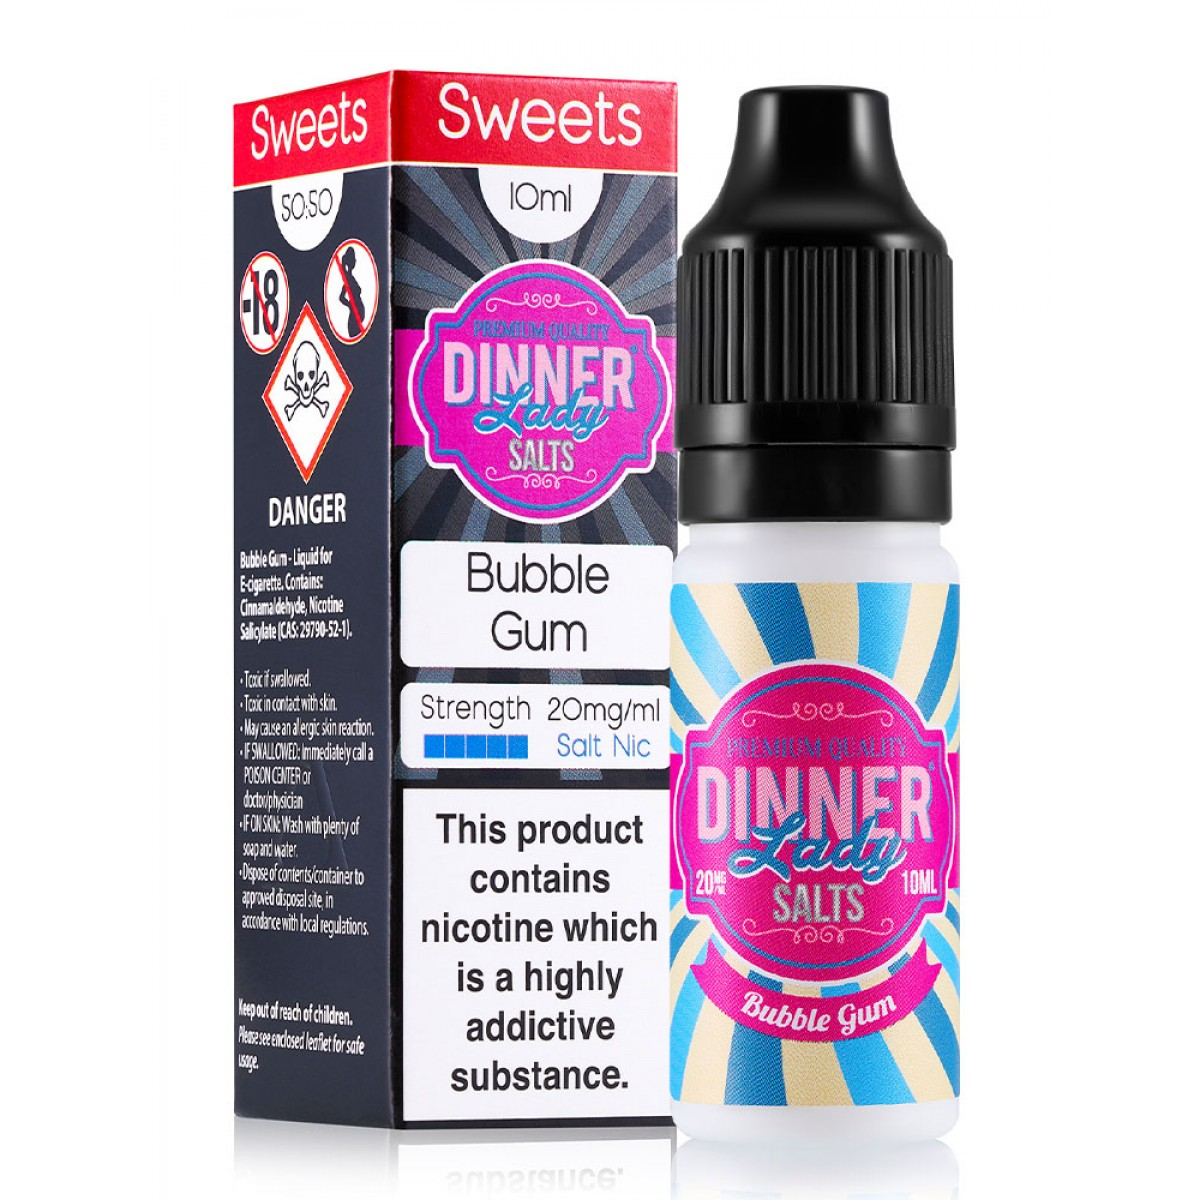 BUBBLE GUM BY DINNER LADY SALTS